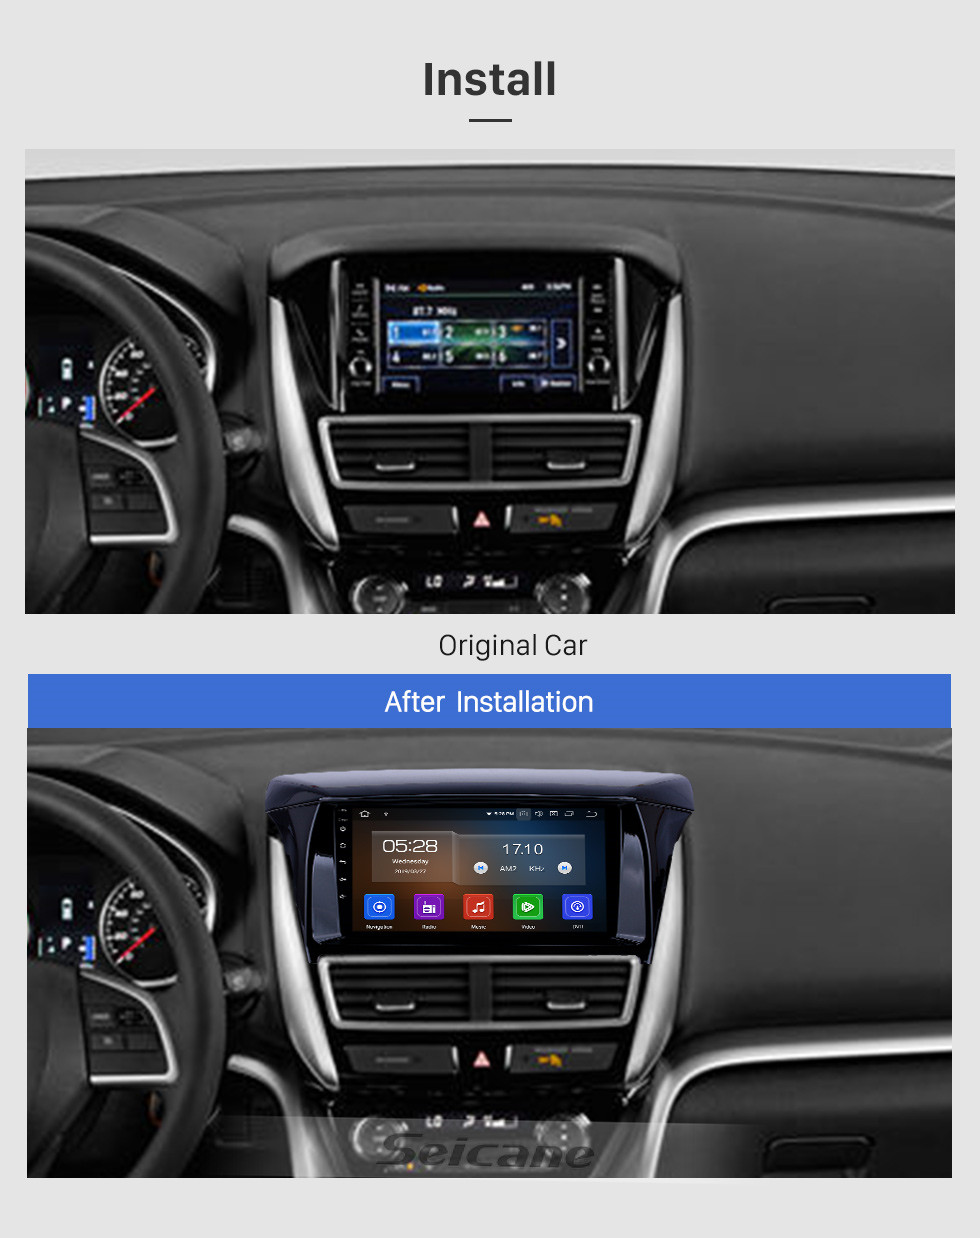 Seicane 2018 Mitsubishi Eclipse Android 9.0 9 Zoll GPS Navigationsradio Bluetooth HD Touchscreen USB Carplay Unterstützung Digital TV DAB +